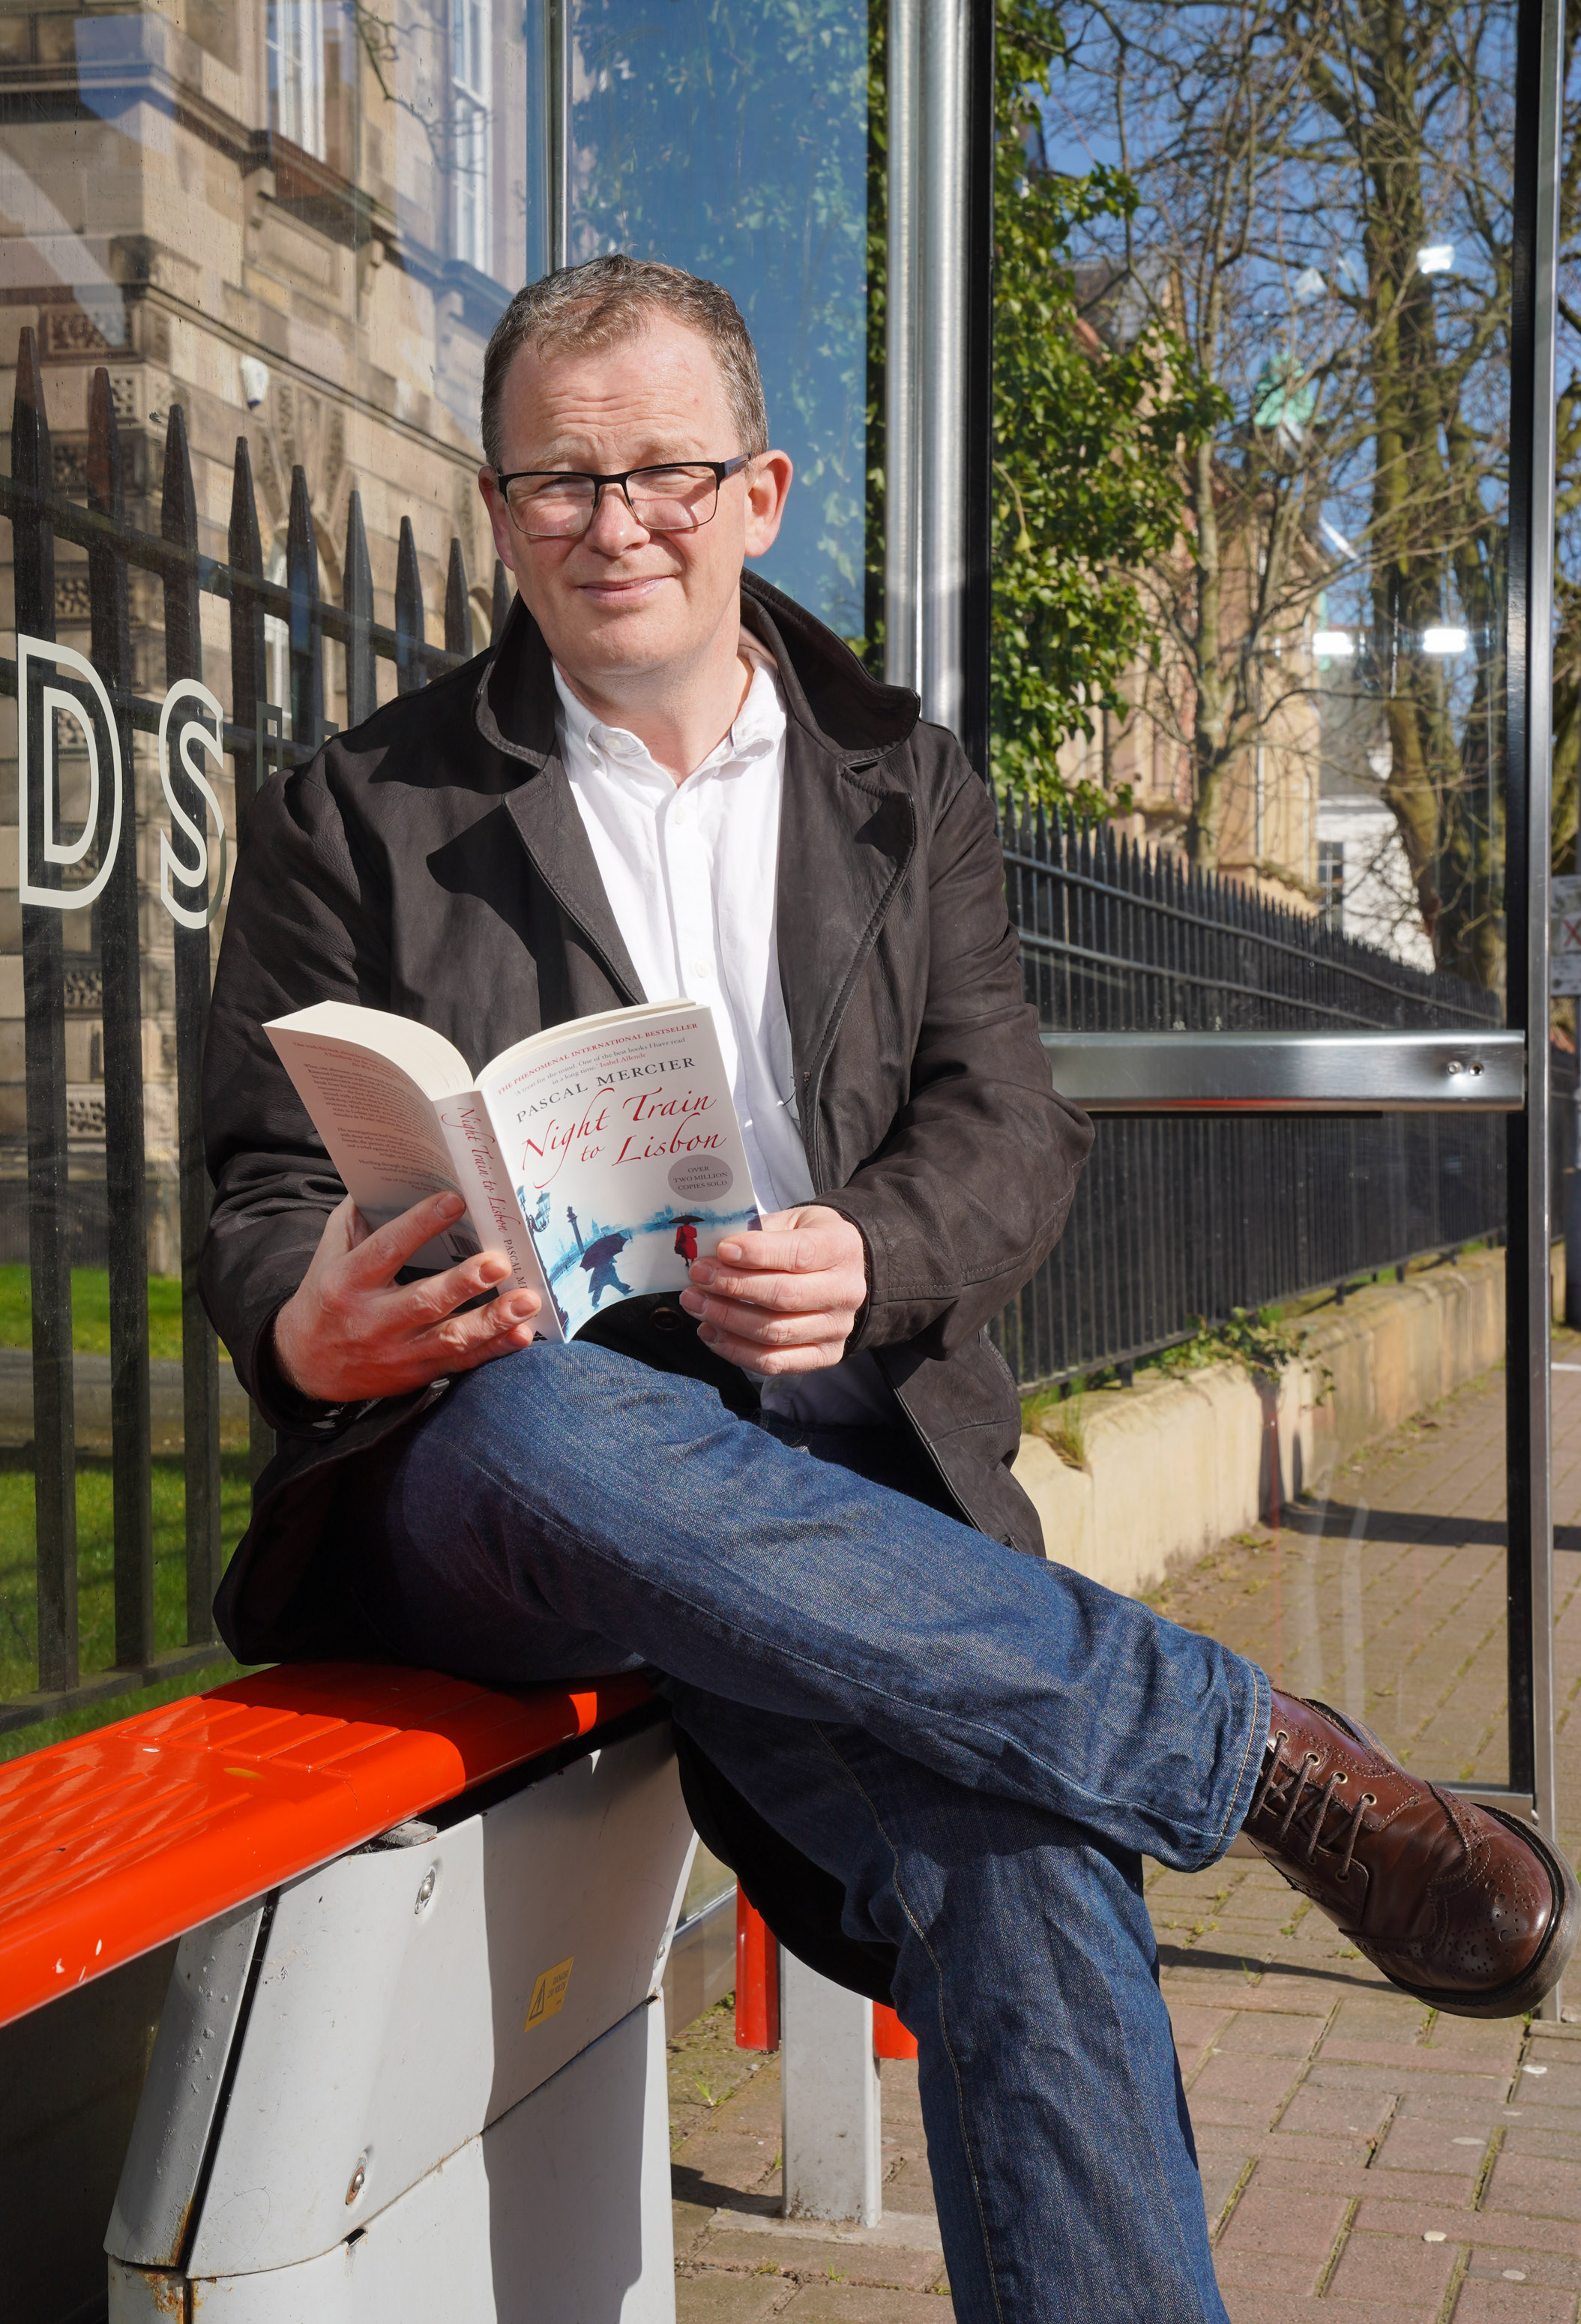 Pictured is author Brian McGilloway